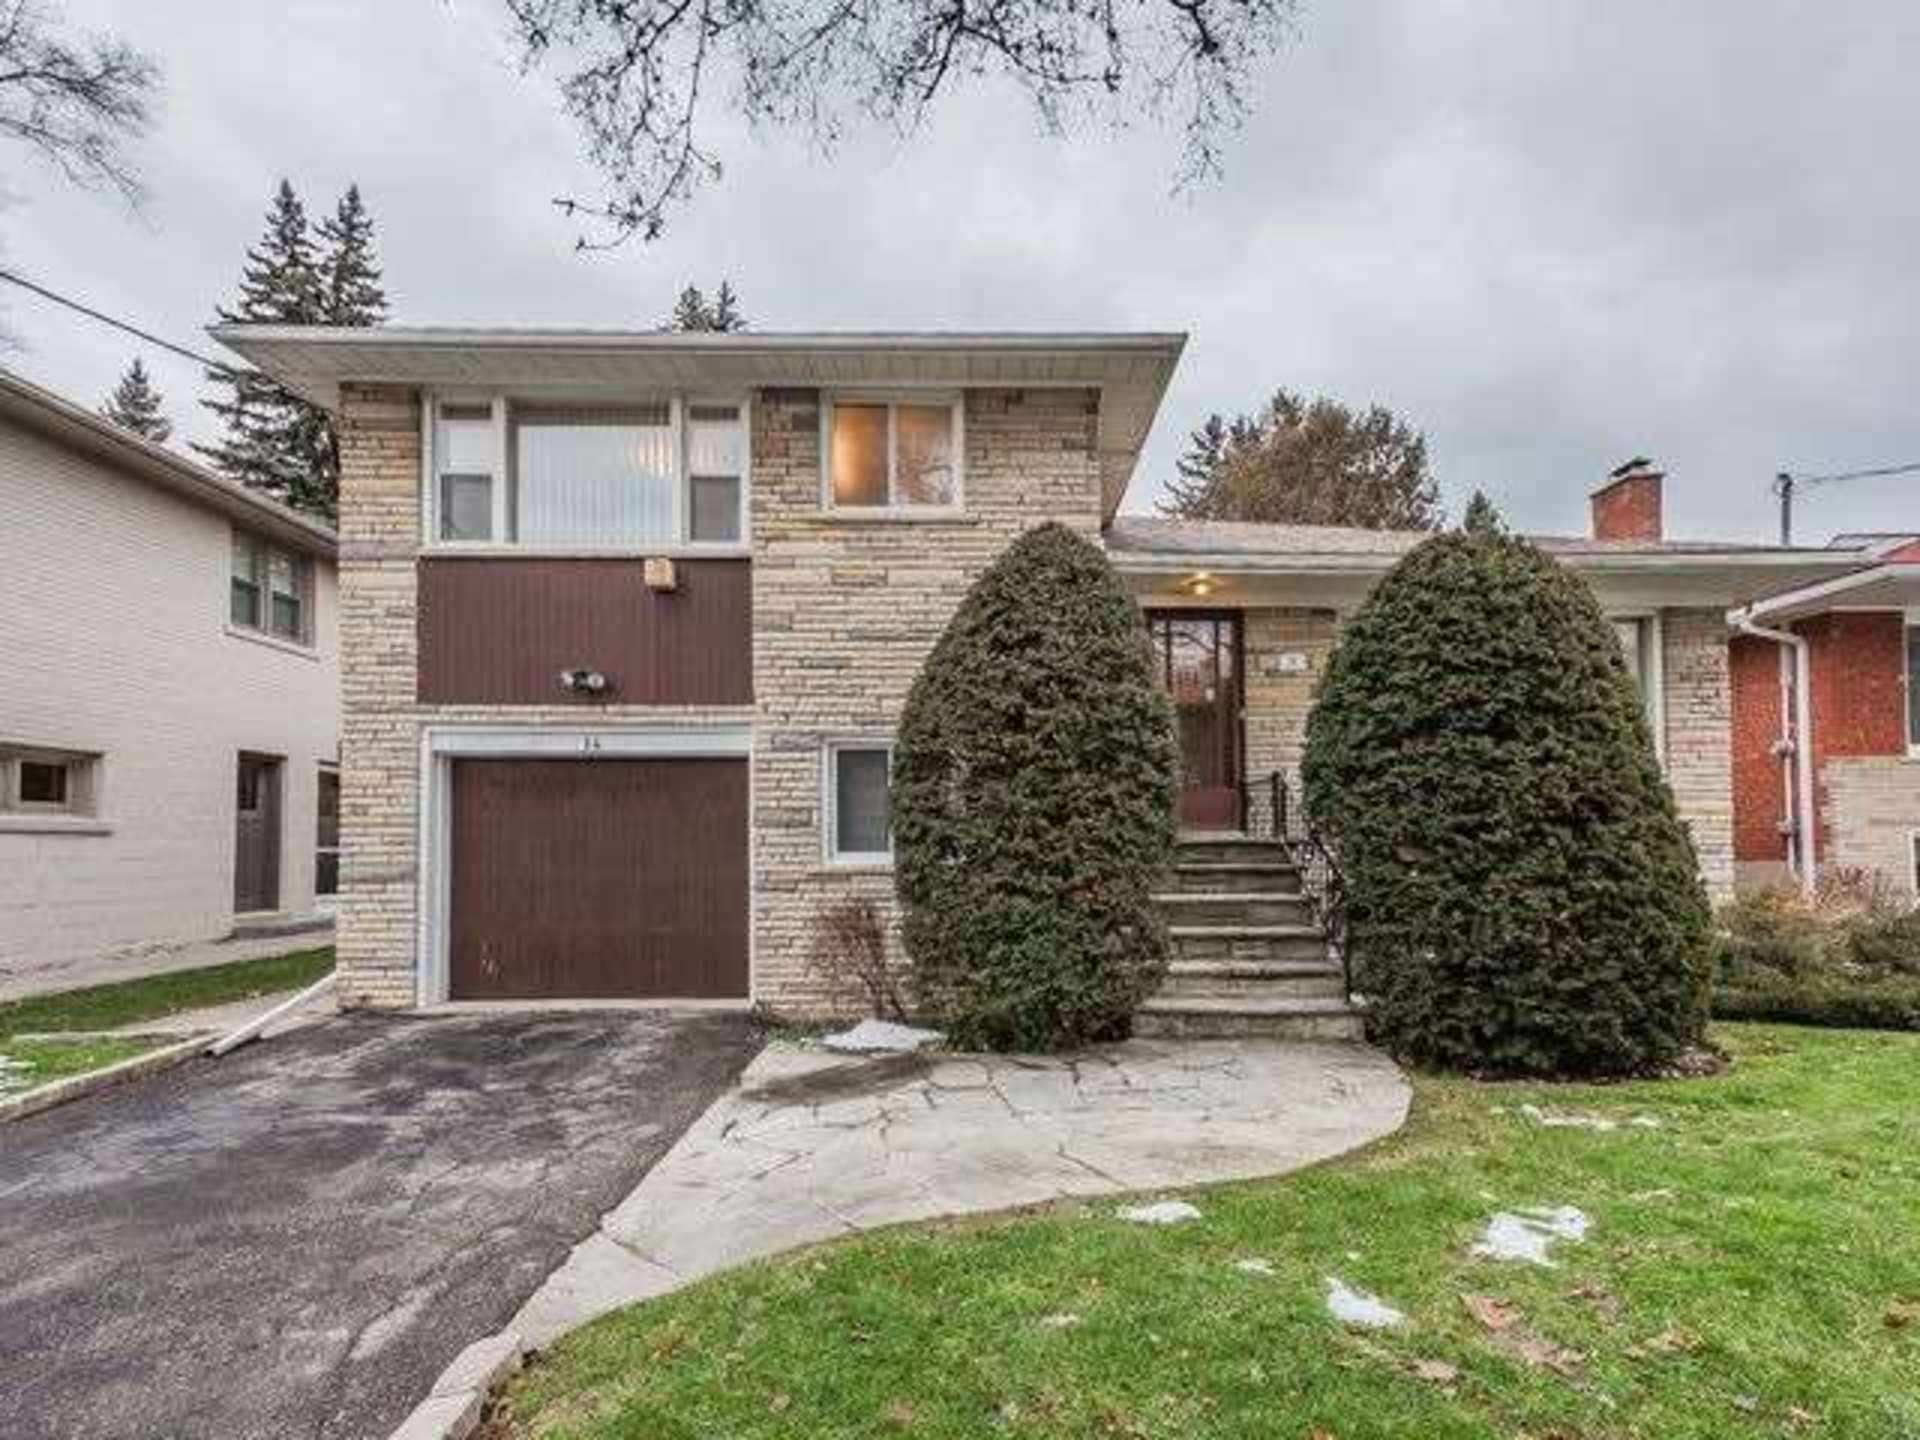 SALE # 450 - 14 Arrowstook Road, Bayview Village, Toronto 2